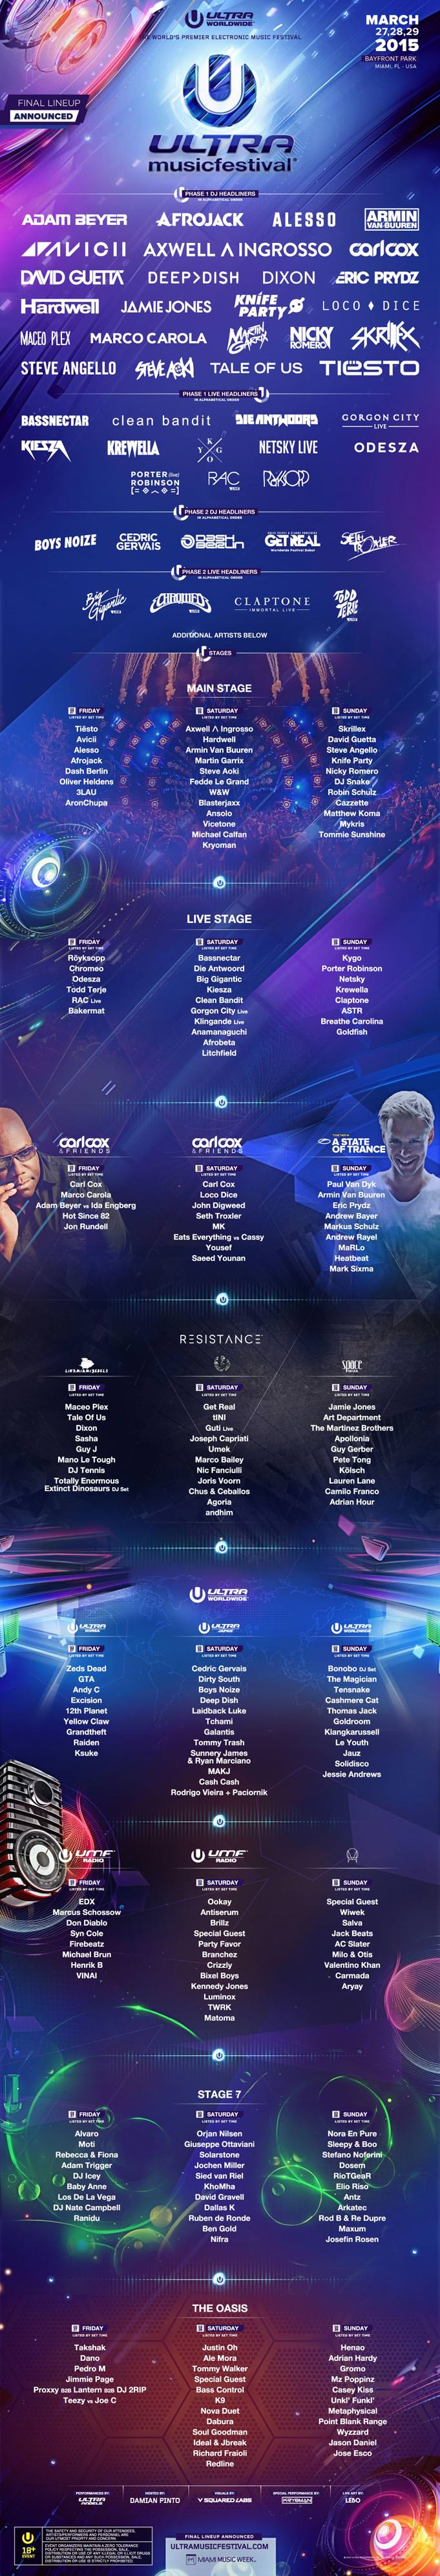 Ultra Music Festival 2015 Lineup complete